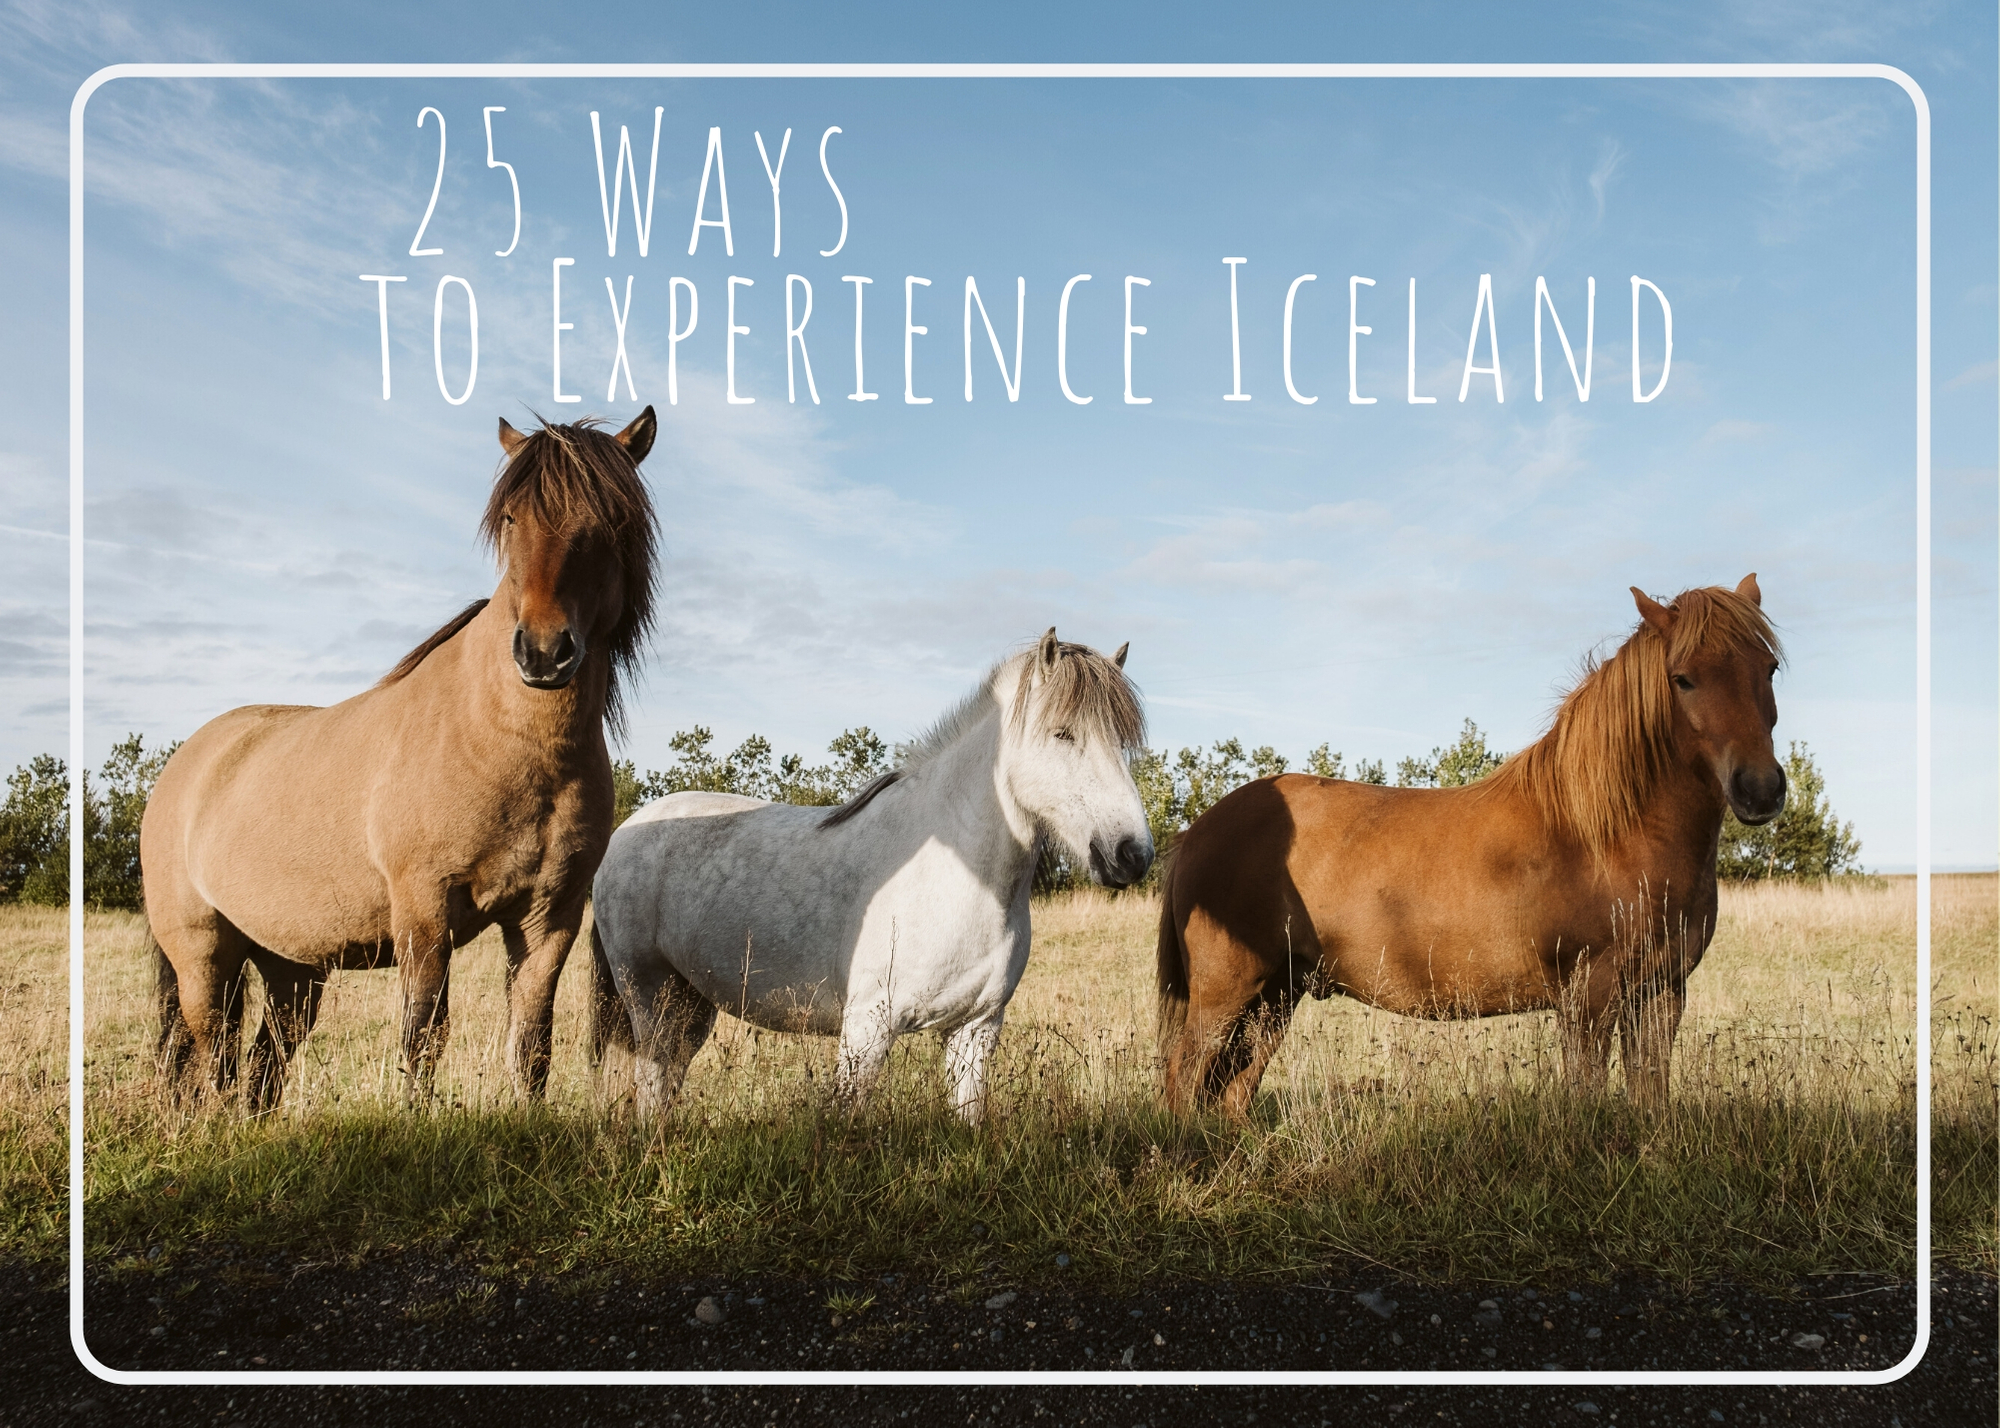 25 Ways to Experience Iceland